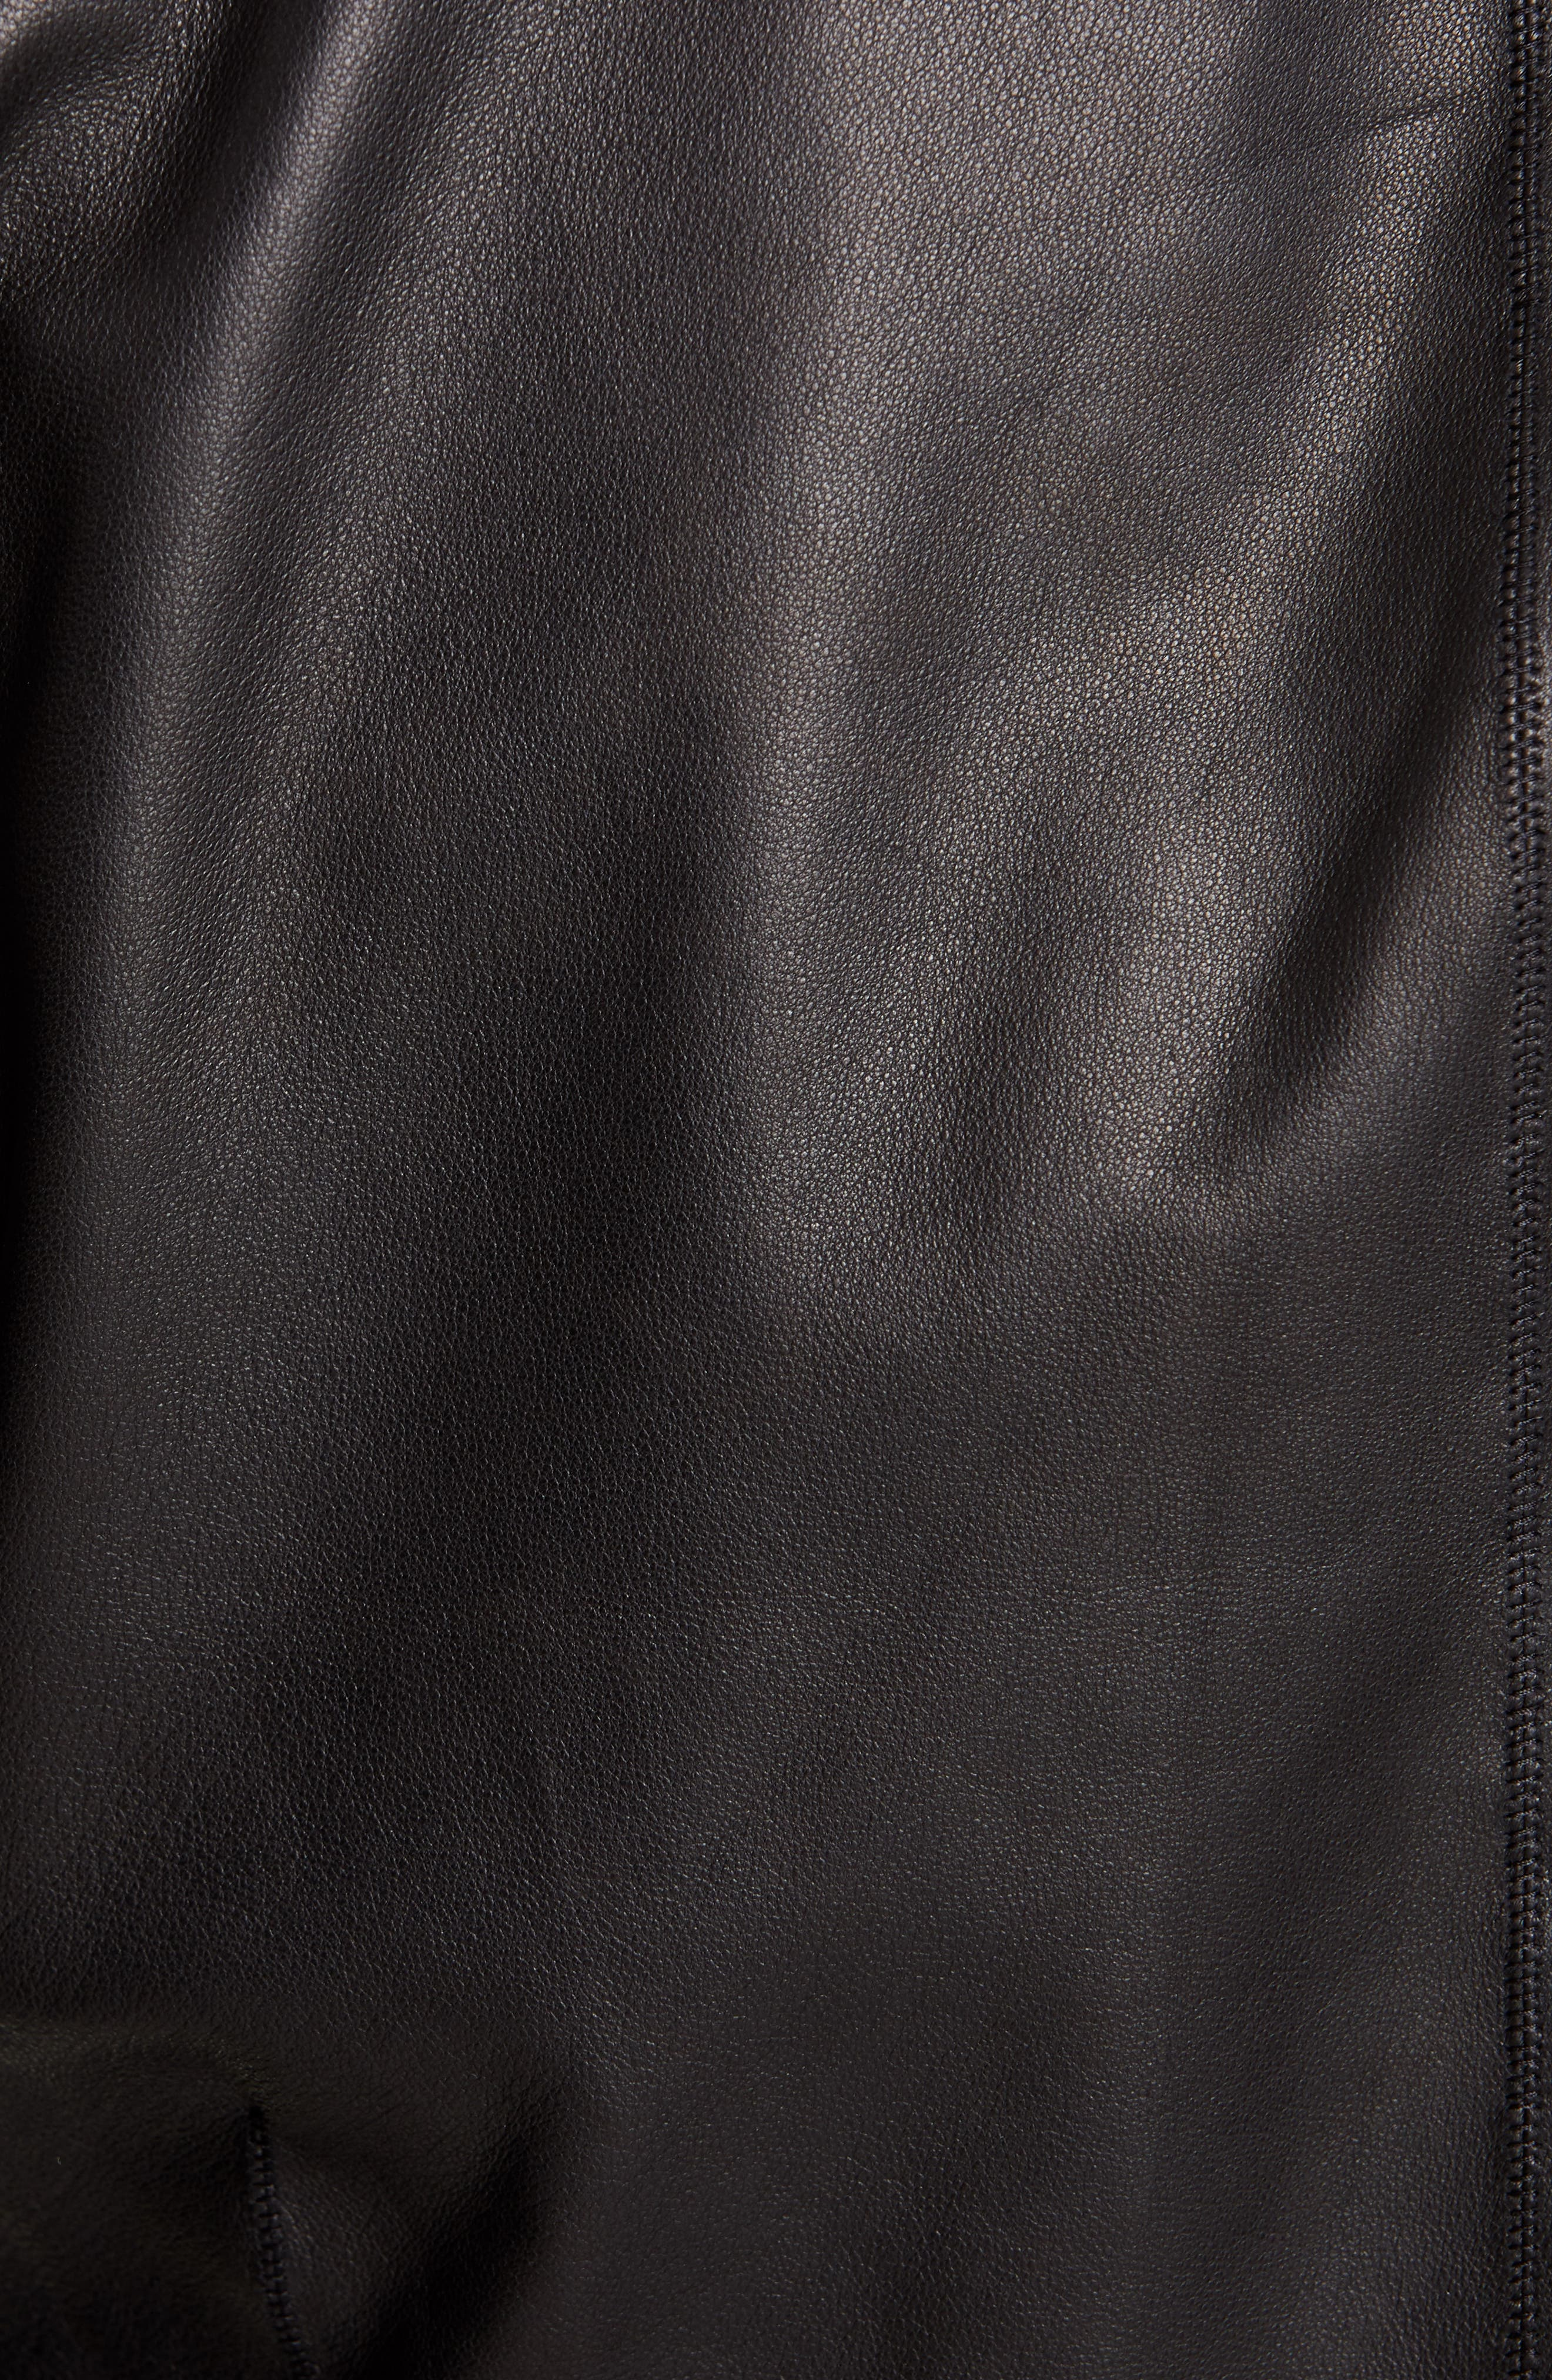 RICK OWENS,                             Embroidered Leather Biker Jacket,                             Alternate thumbnail 6, color,                             BLACK PEARL